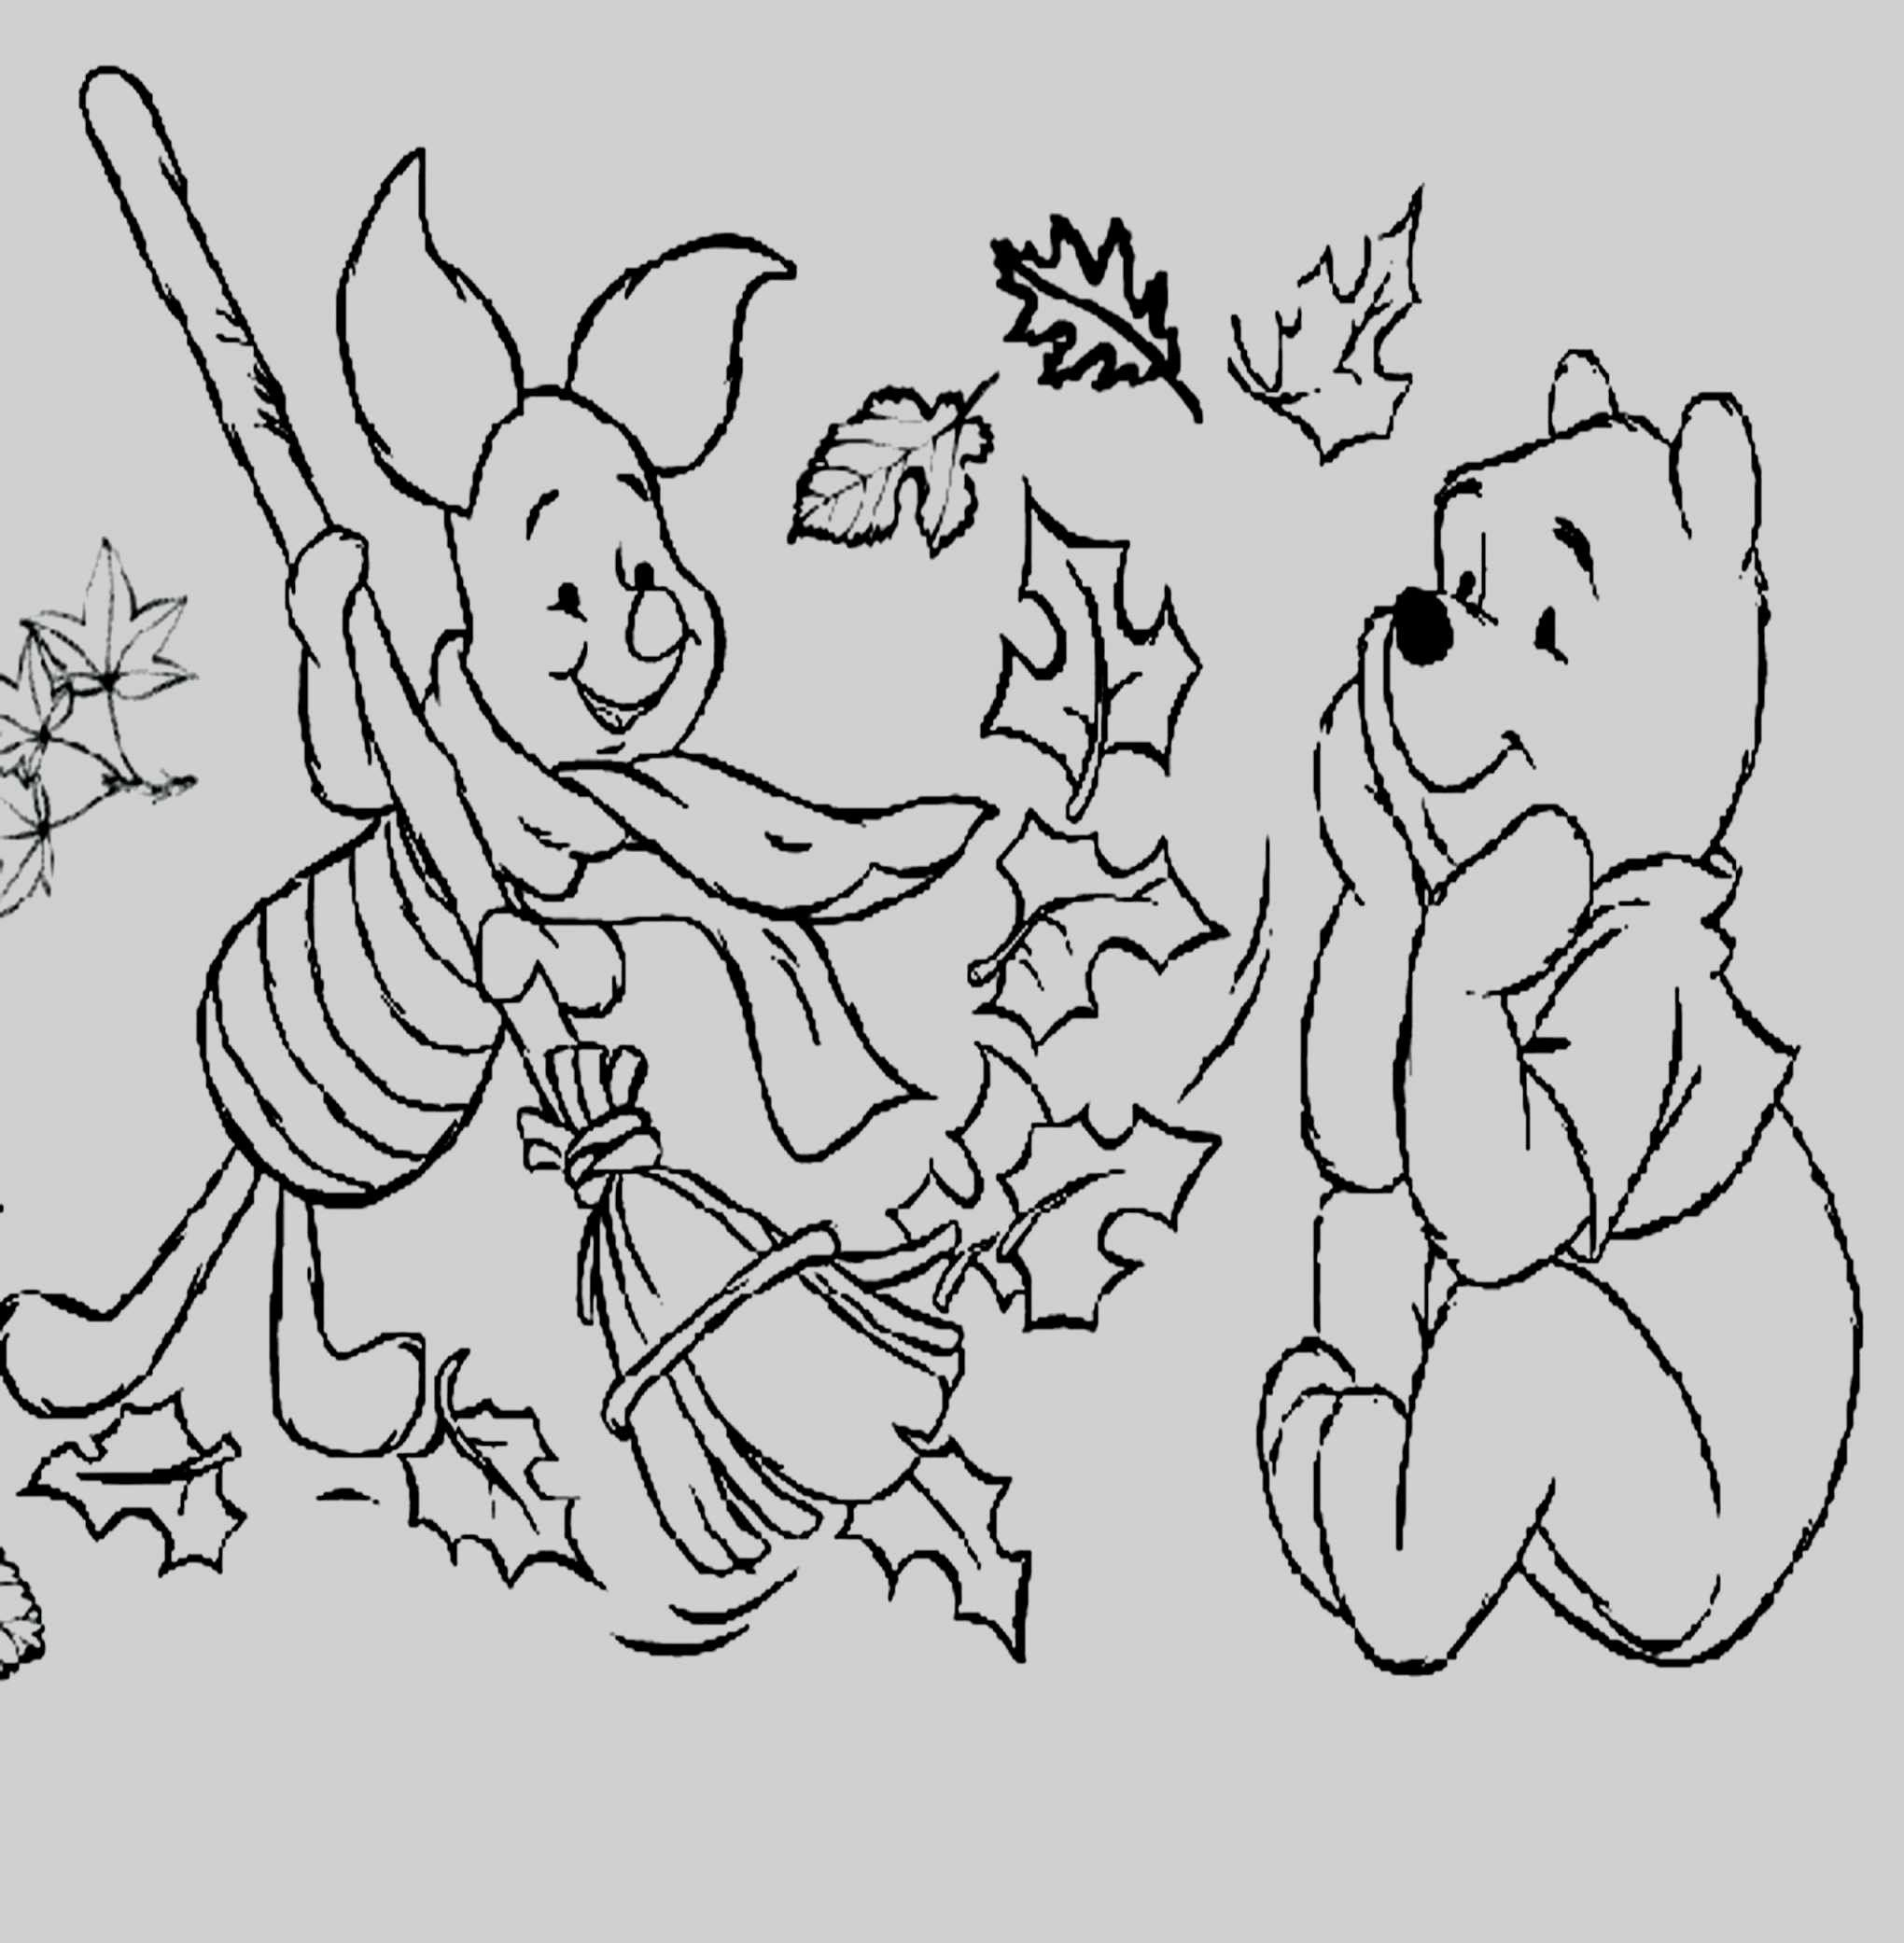 Personalized Name Coloring Pages Inspirational Best Frozen Trolls Coloring Pages Traspor In 2020 Unicorn Coloring Pages Animal Coloring Pages Princess Coloring Pages